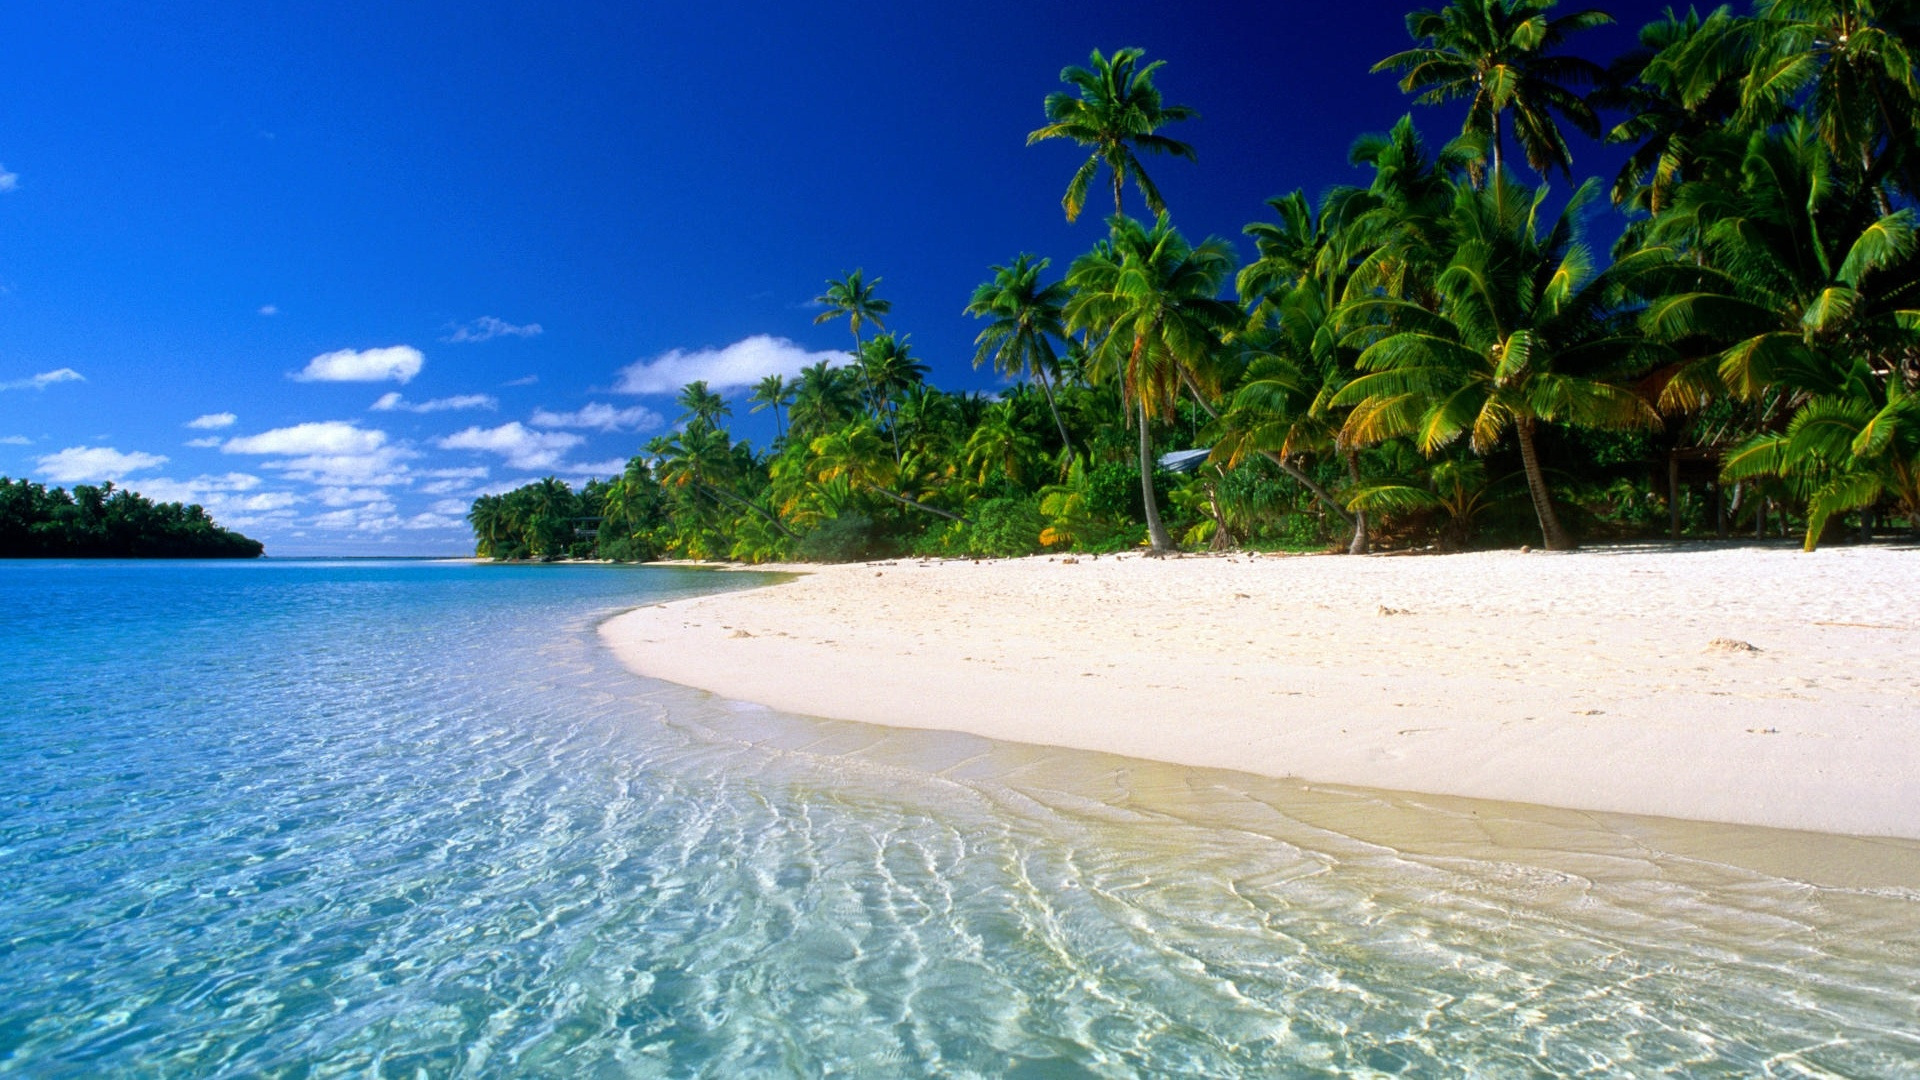 desktop wallpaper beautiful tropical scenes wallpapersafari